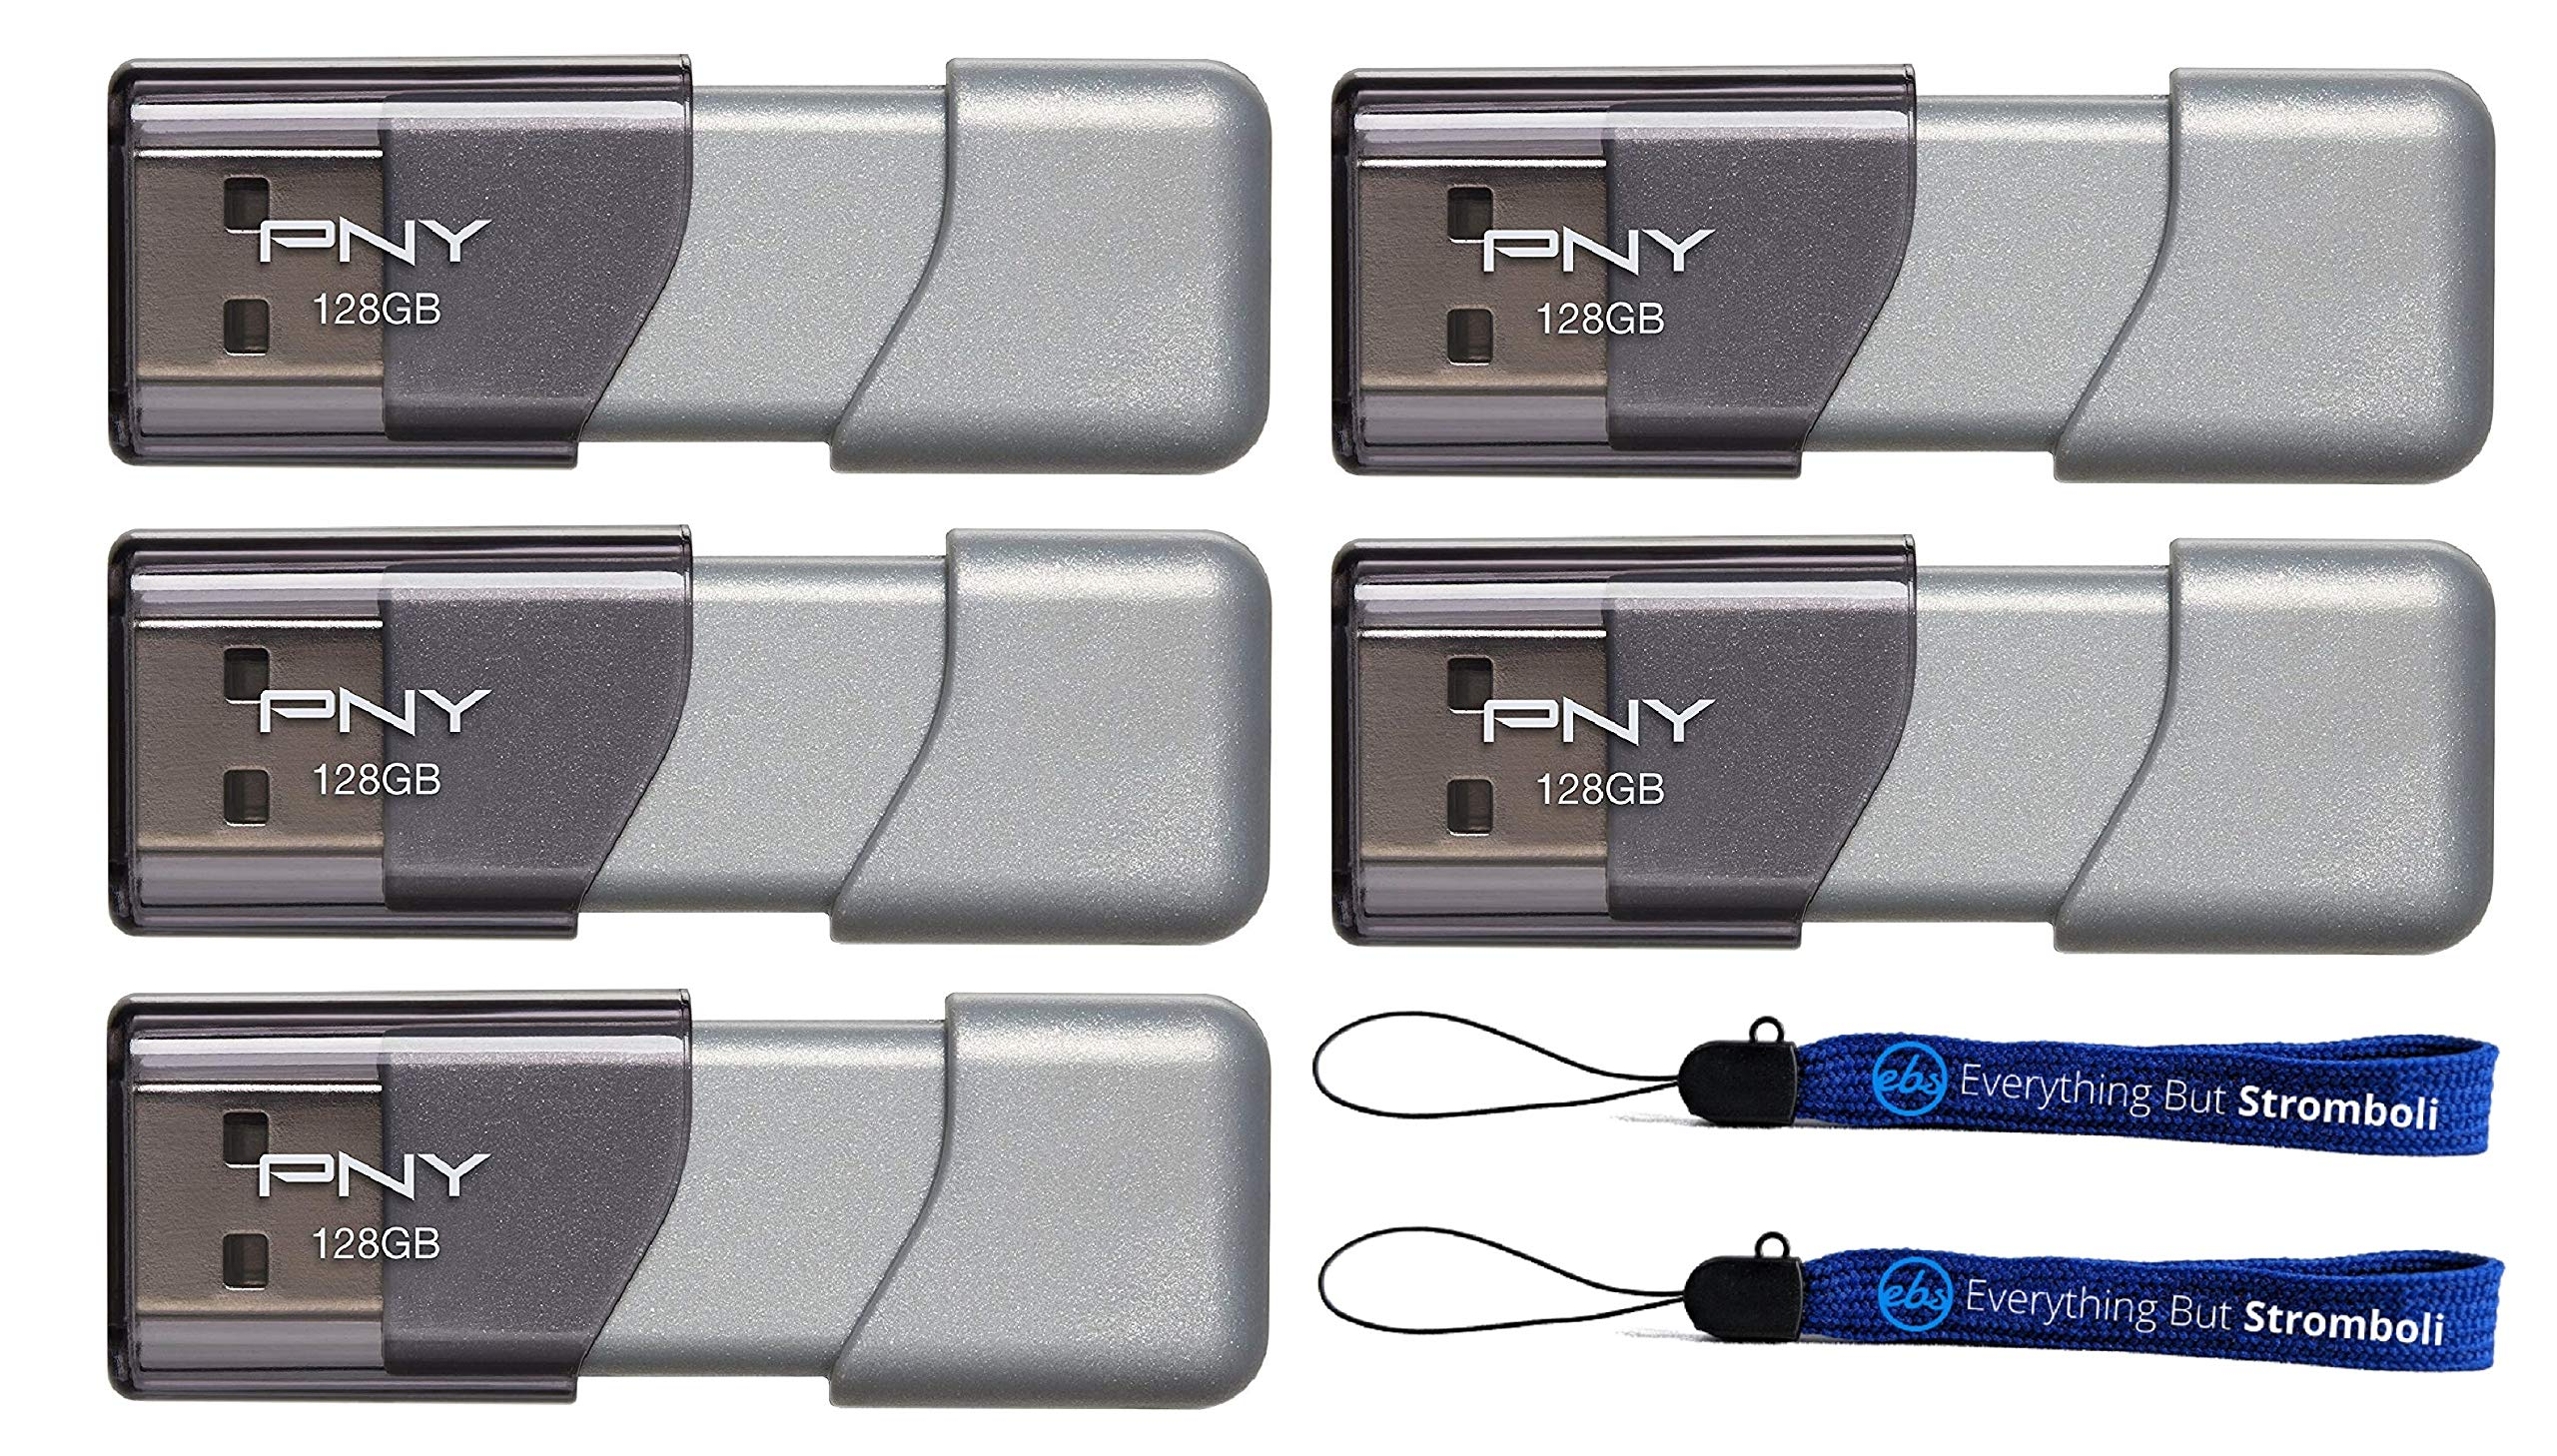 PNY 128GB USB 3.0 Flash Drive Elite Turbo Attache 3 (Five Pack Bundle) Model P-FD128TBOP-GE Plus (2) Everything But Stromboli (TM) Lanyard by PNY (Image #1)